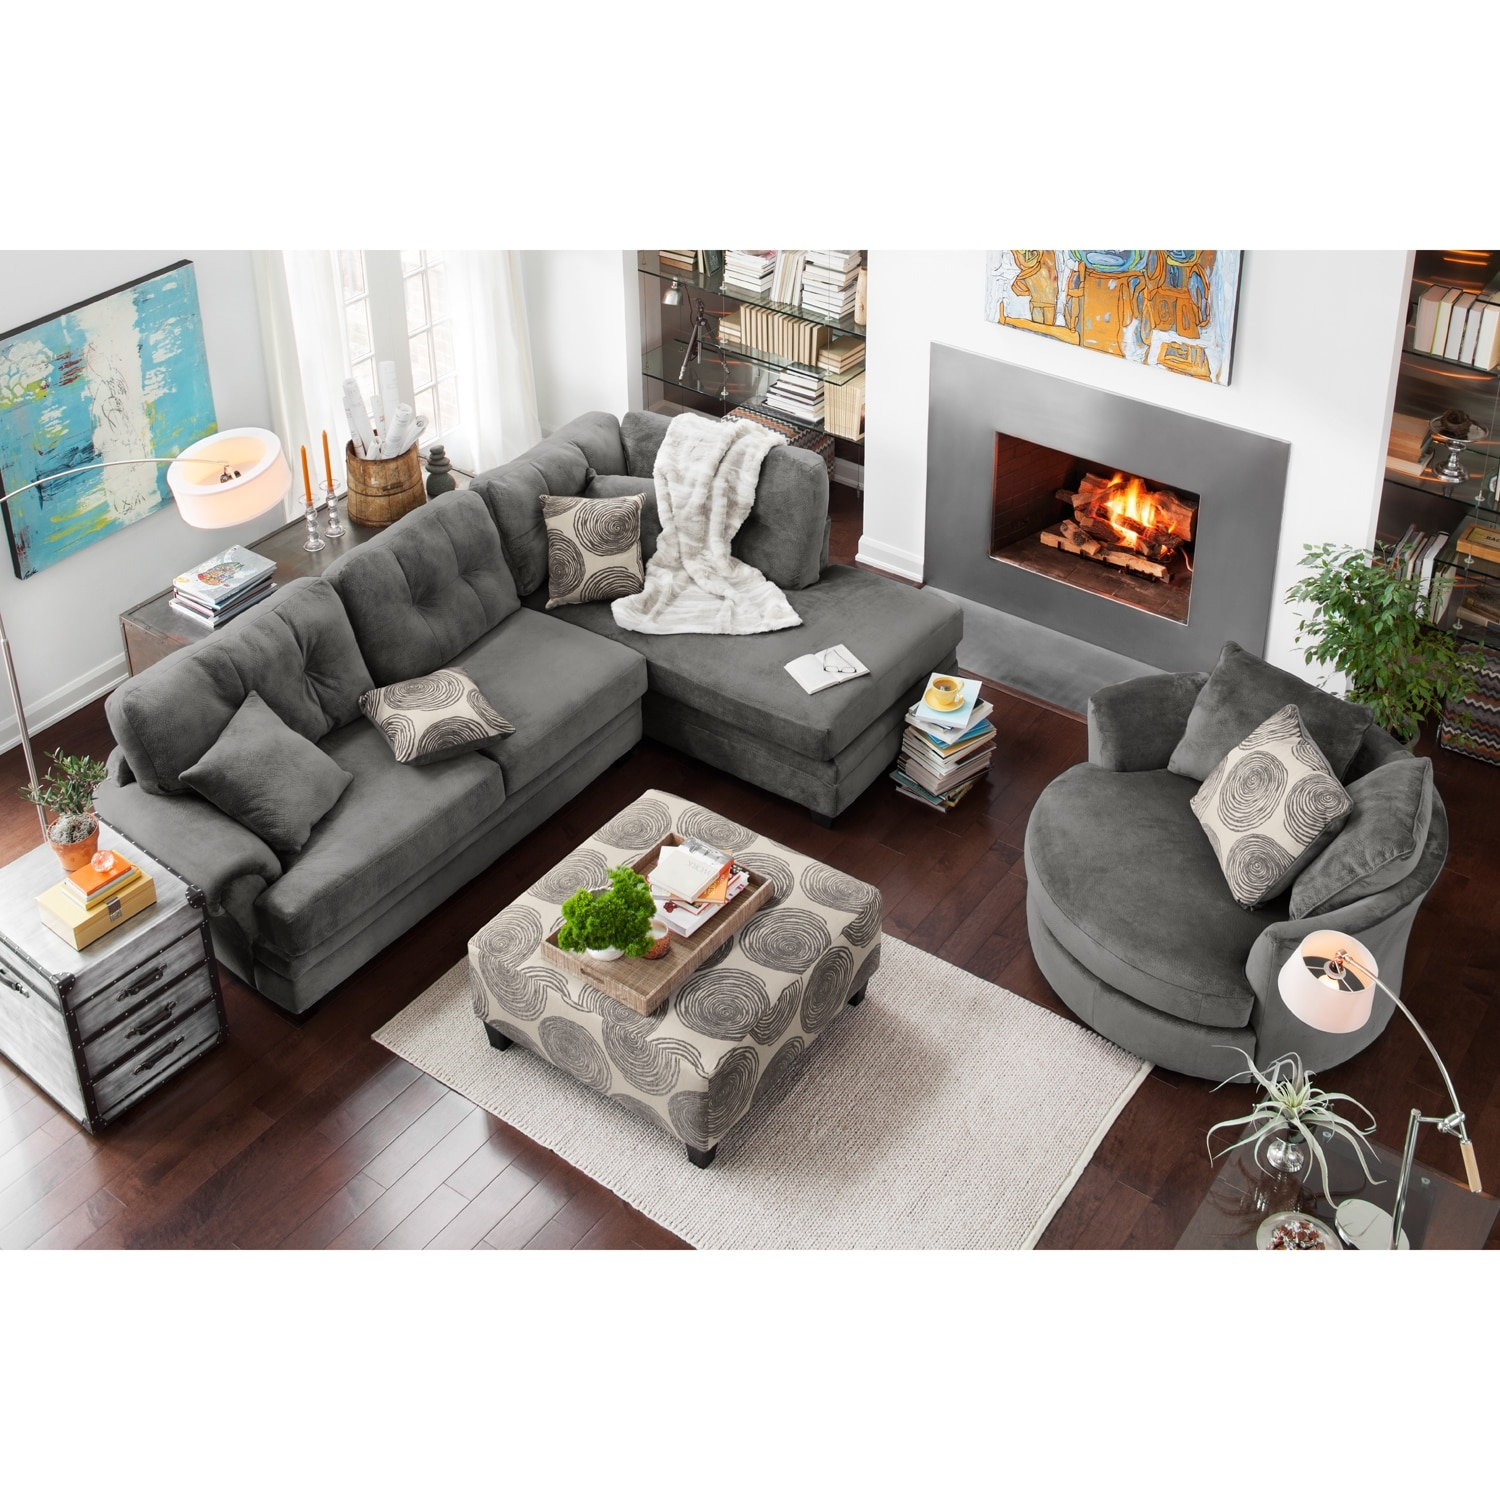 Cordelle 2 piece right facing chaise sectional gray for Living room furniture pieces